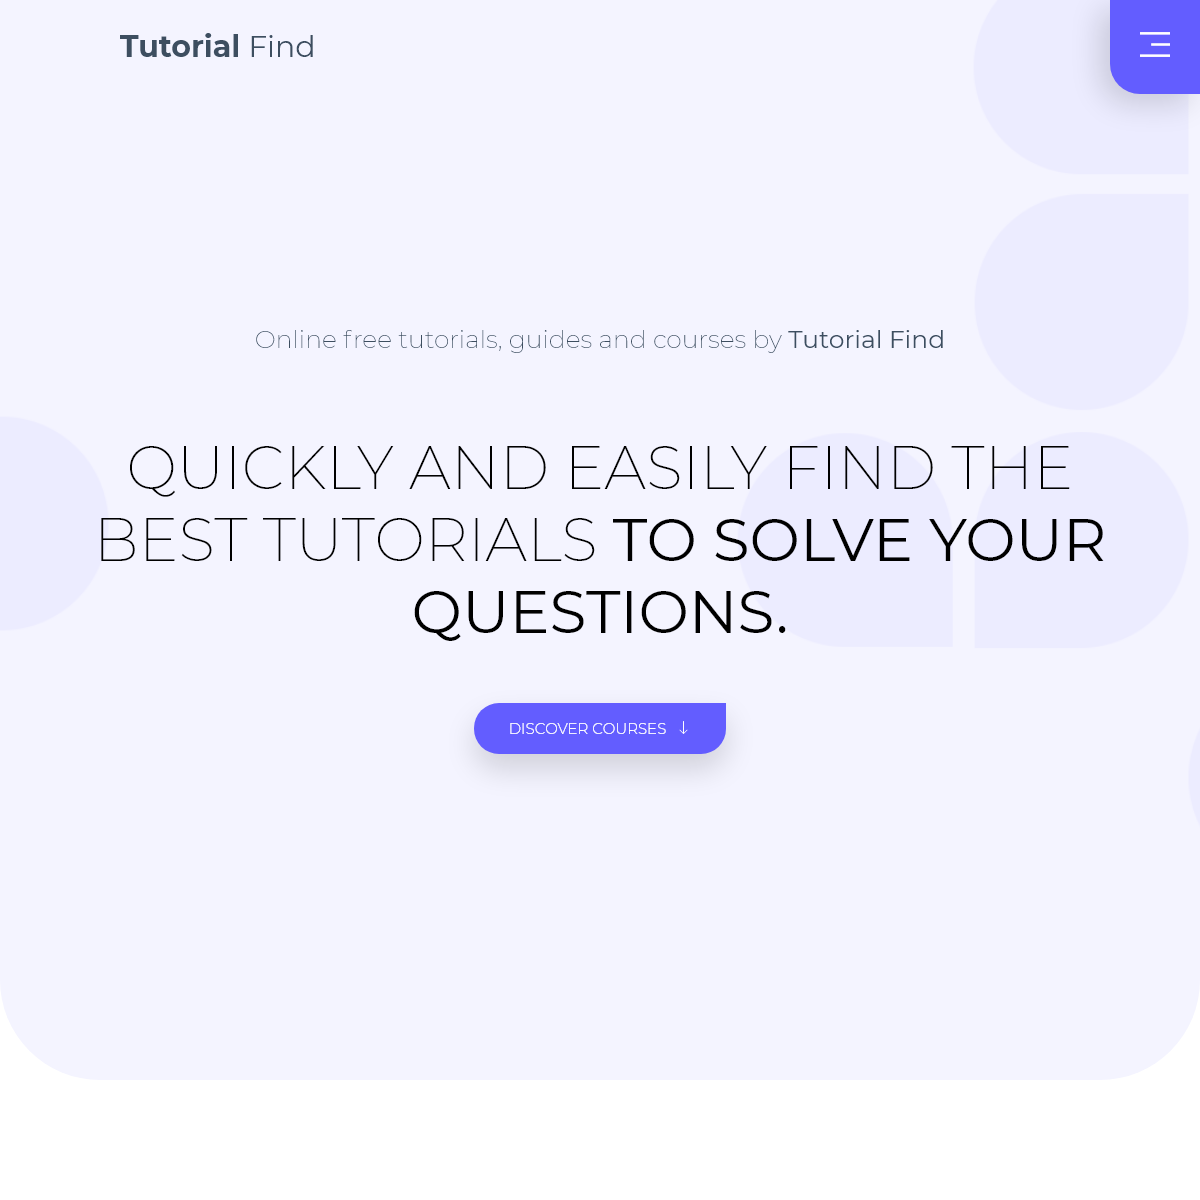 Tutorial Find - Tutorial Find